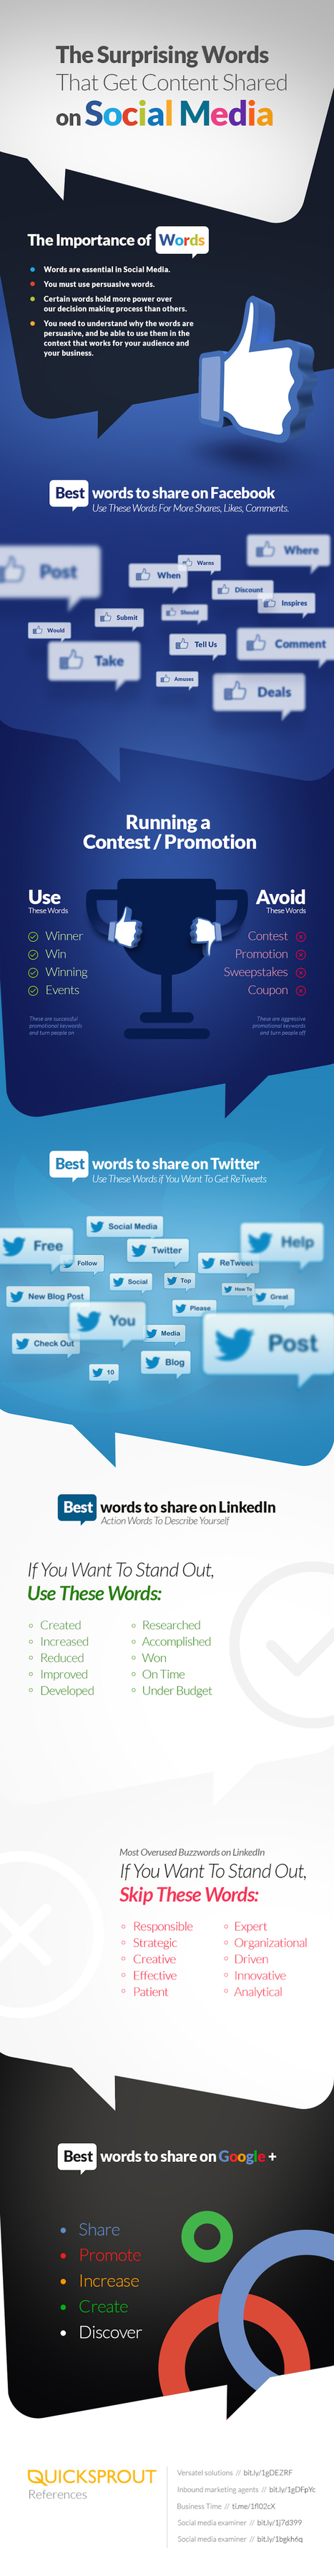 Words That Drive Social Media Shares [INFOGRAPHIC] - SocialTimes | B2B Marketing and PR | Scoop.it